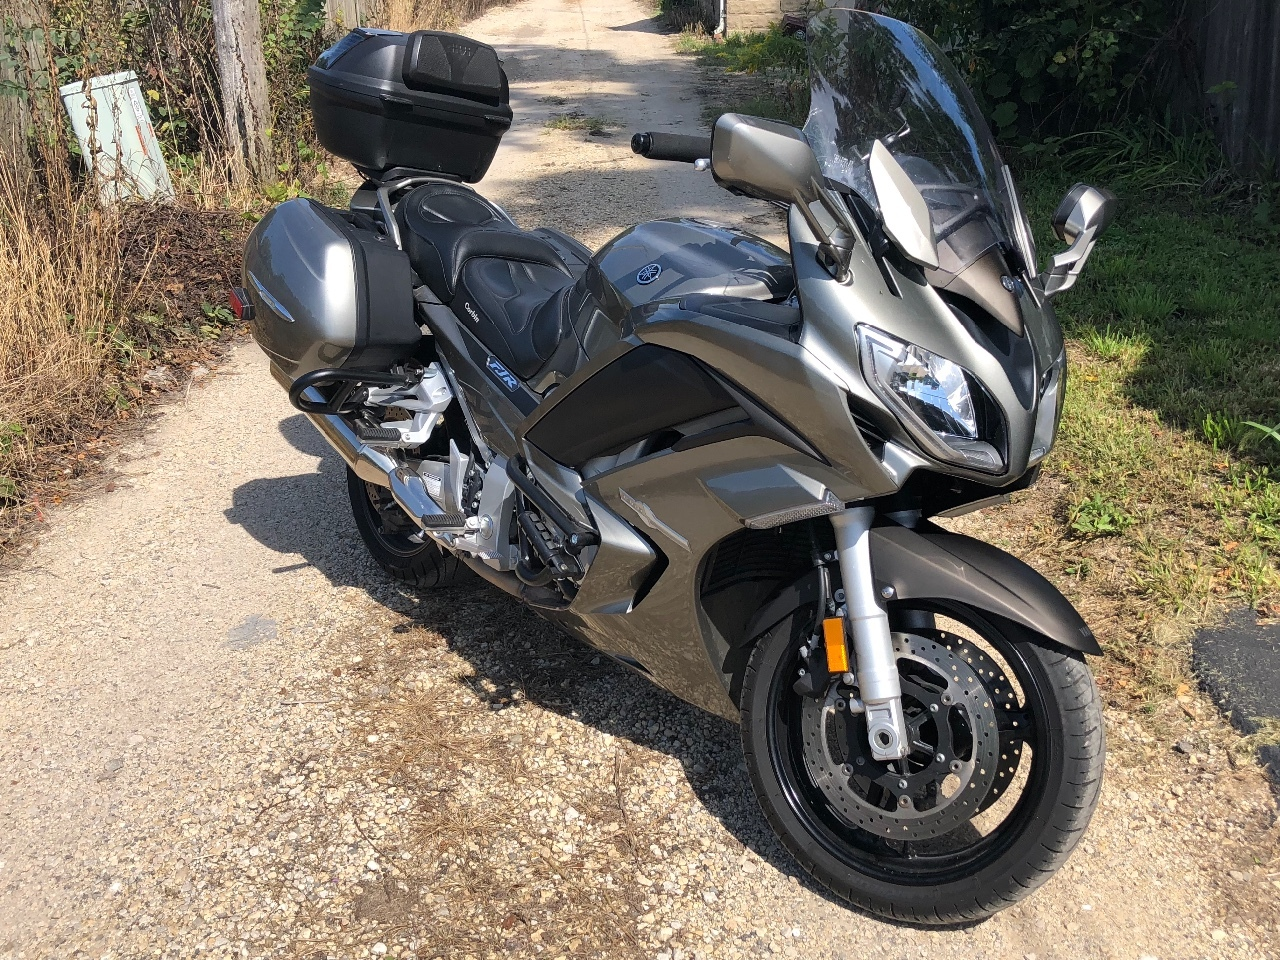 Illinois - Motorcycles For Sale - Cycle Trader